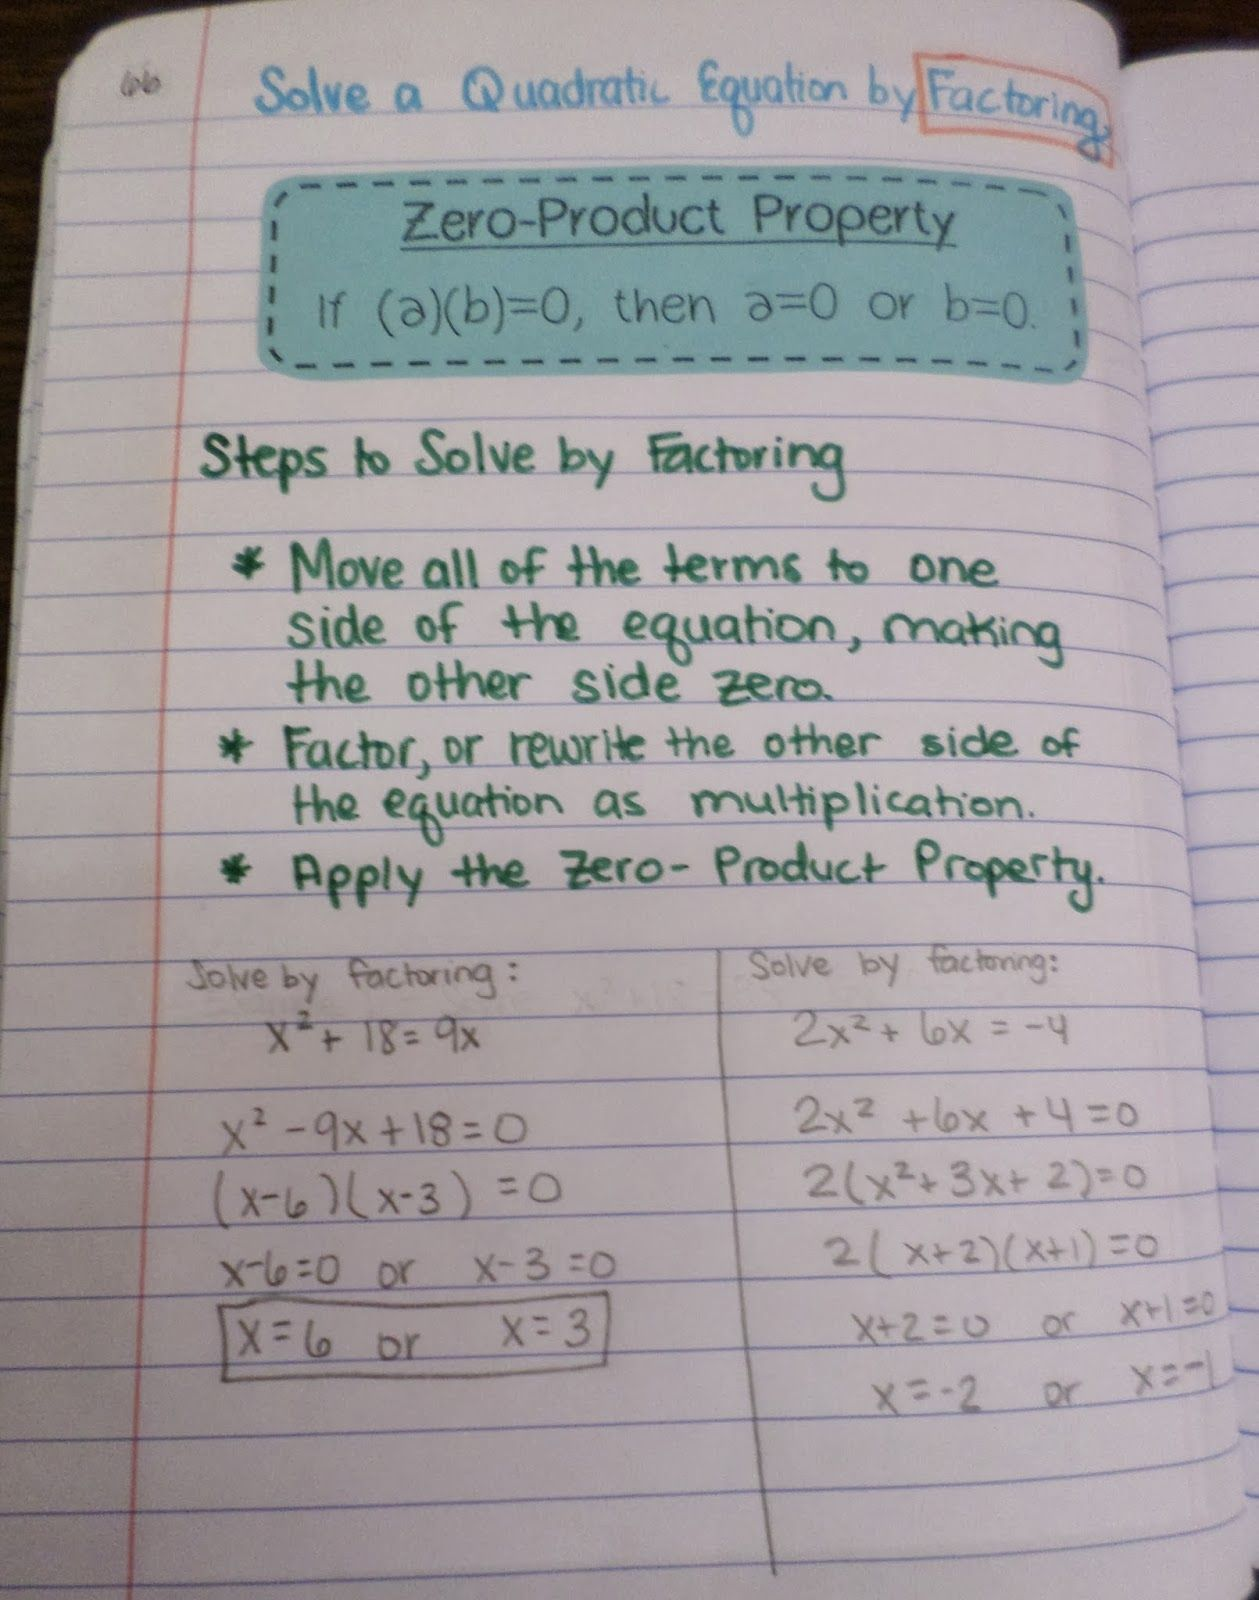 Solving Quadratics By Factoring And The Zero Product Property